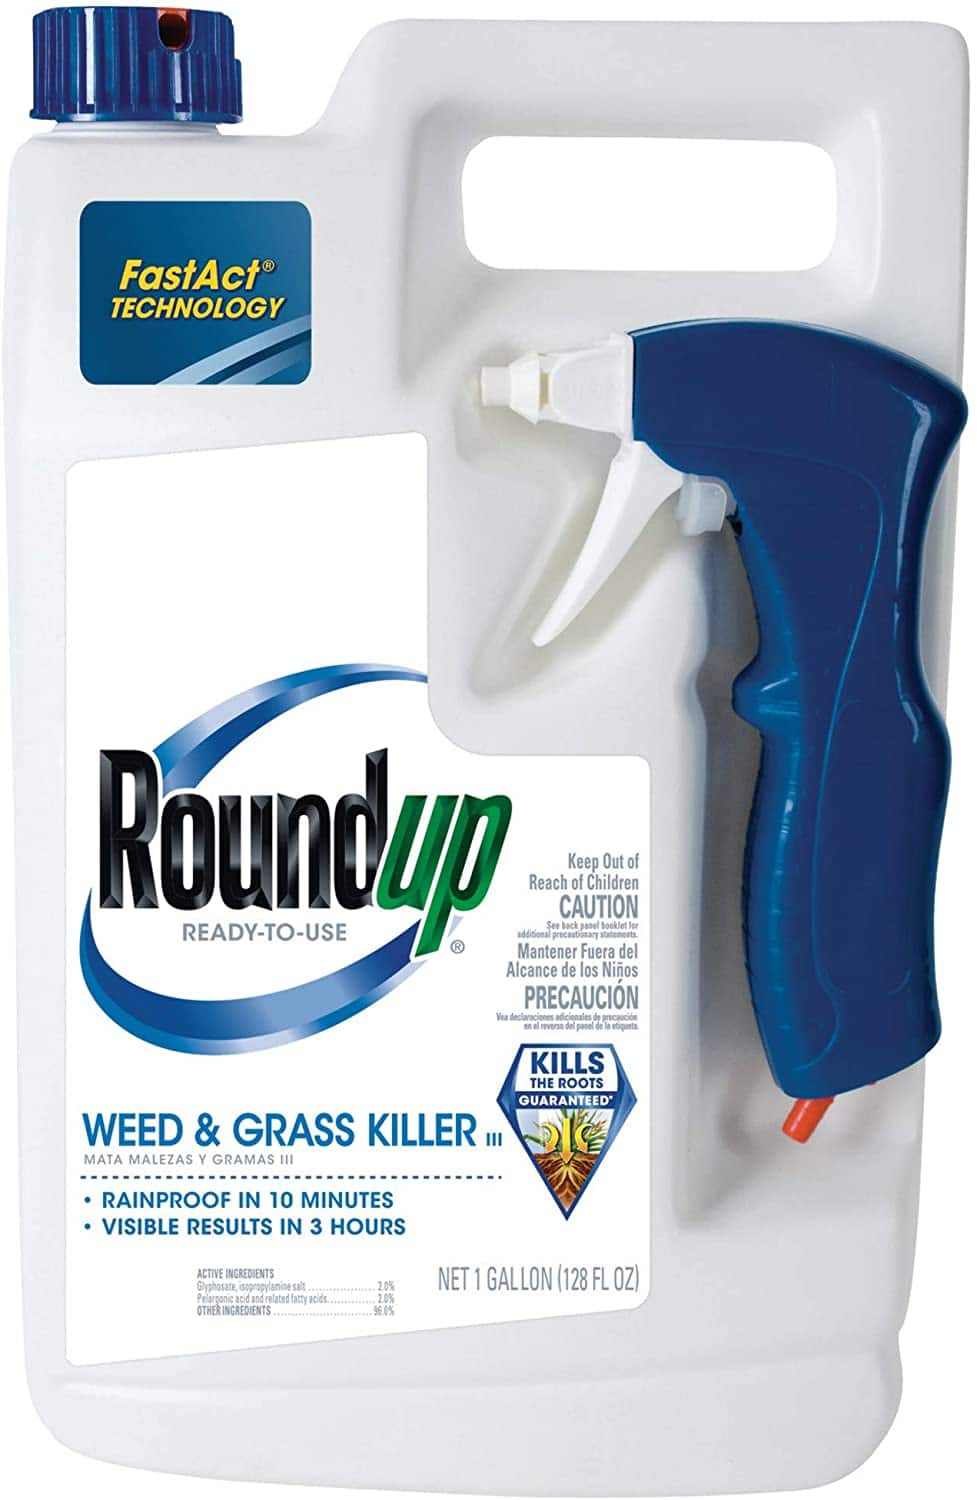 RoundUp Ready-to-Use Weed & Grass Killer III with Comfort Wand, 1.33 GAL -10 bucks with prime $10 or 1 Gallon Trigger Spray $9.30